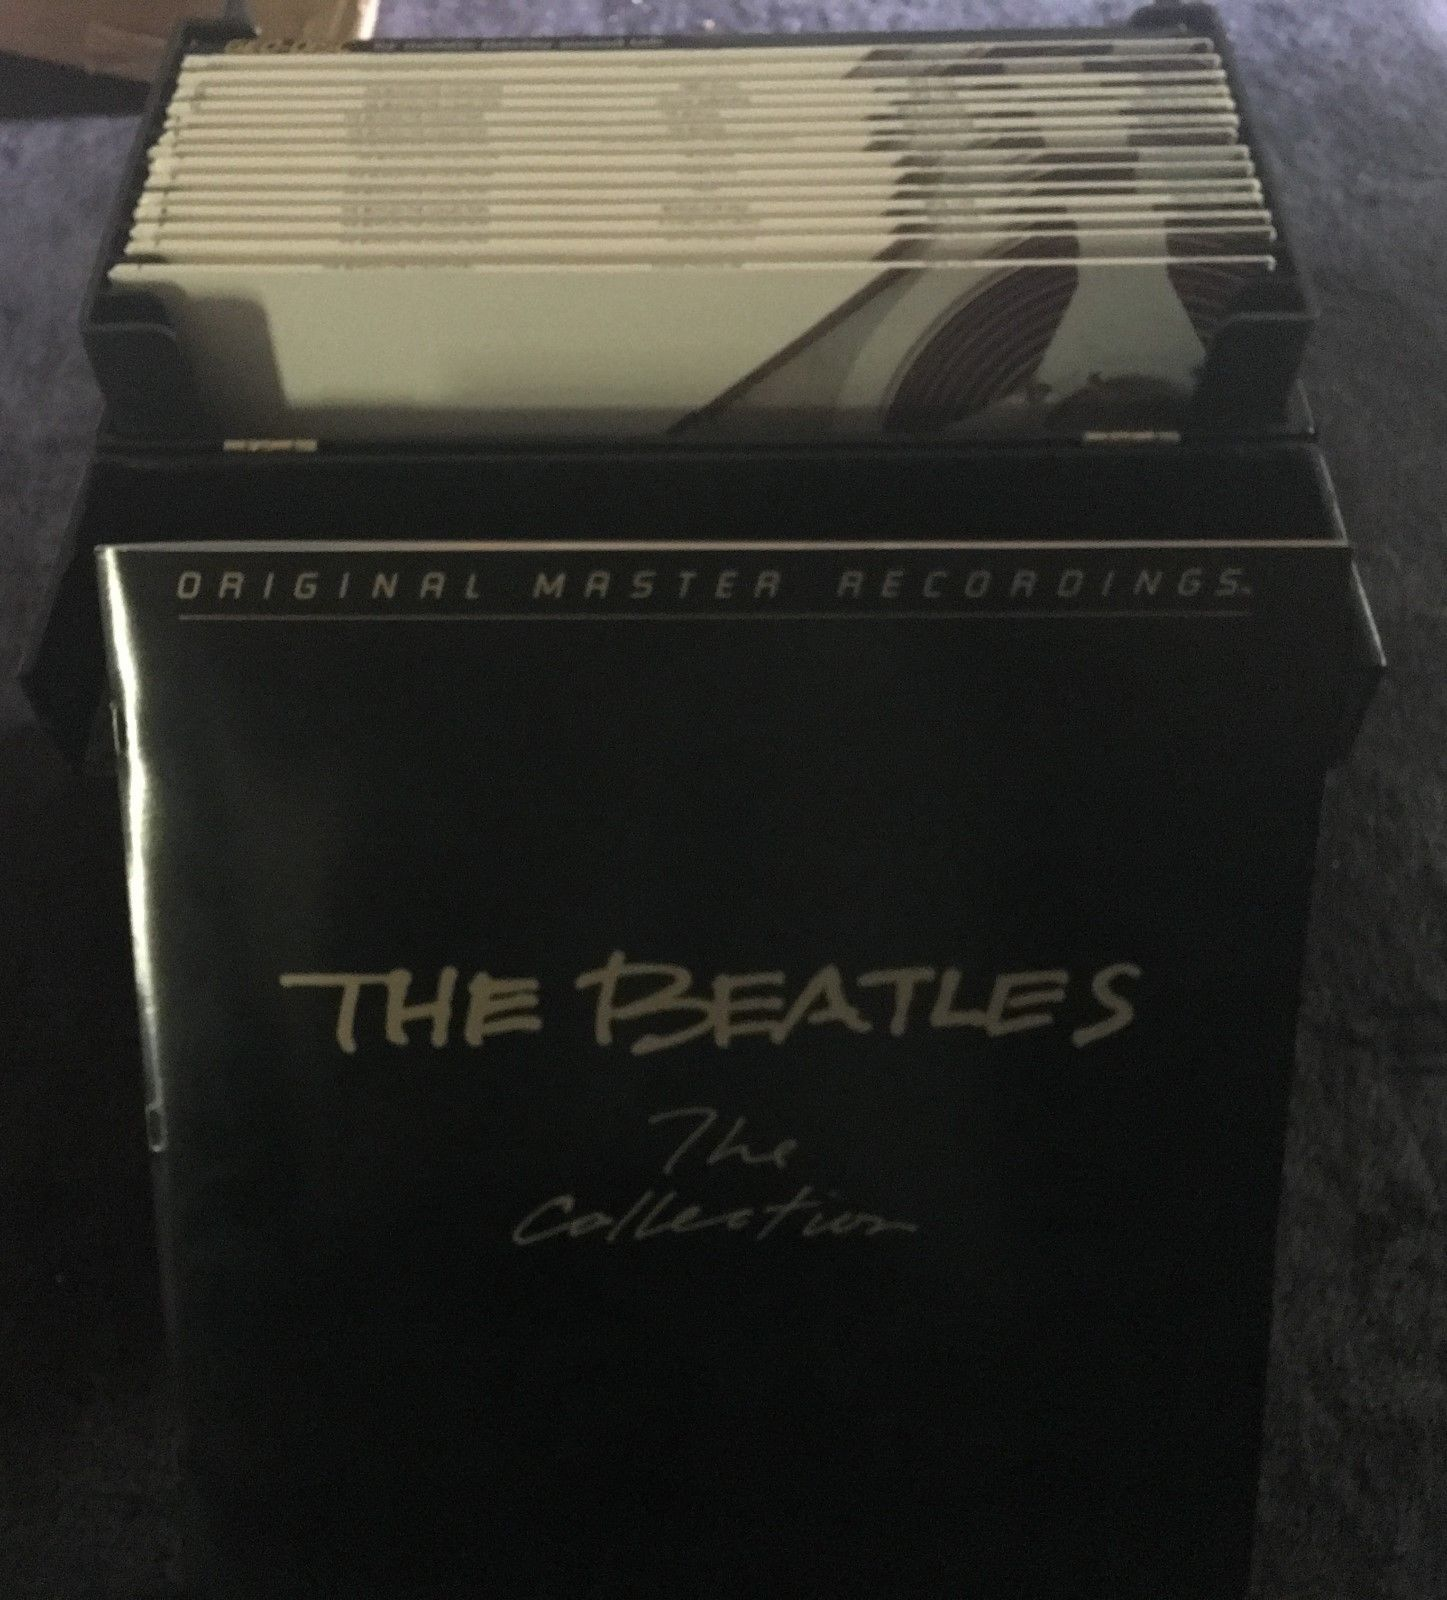 THE BEATLES COLLECTION 1982, MFSL Box Set   #141/25,000